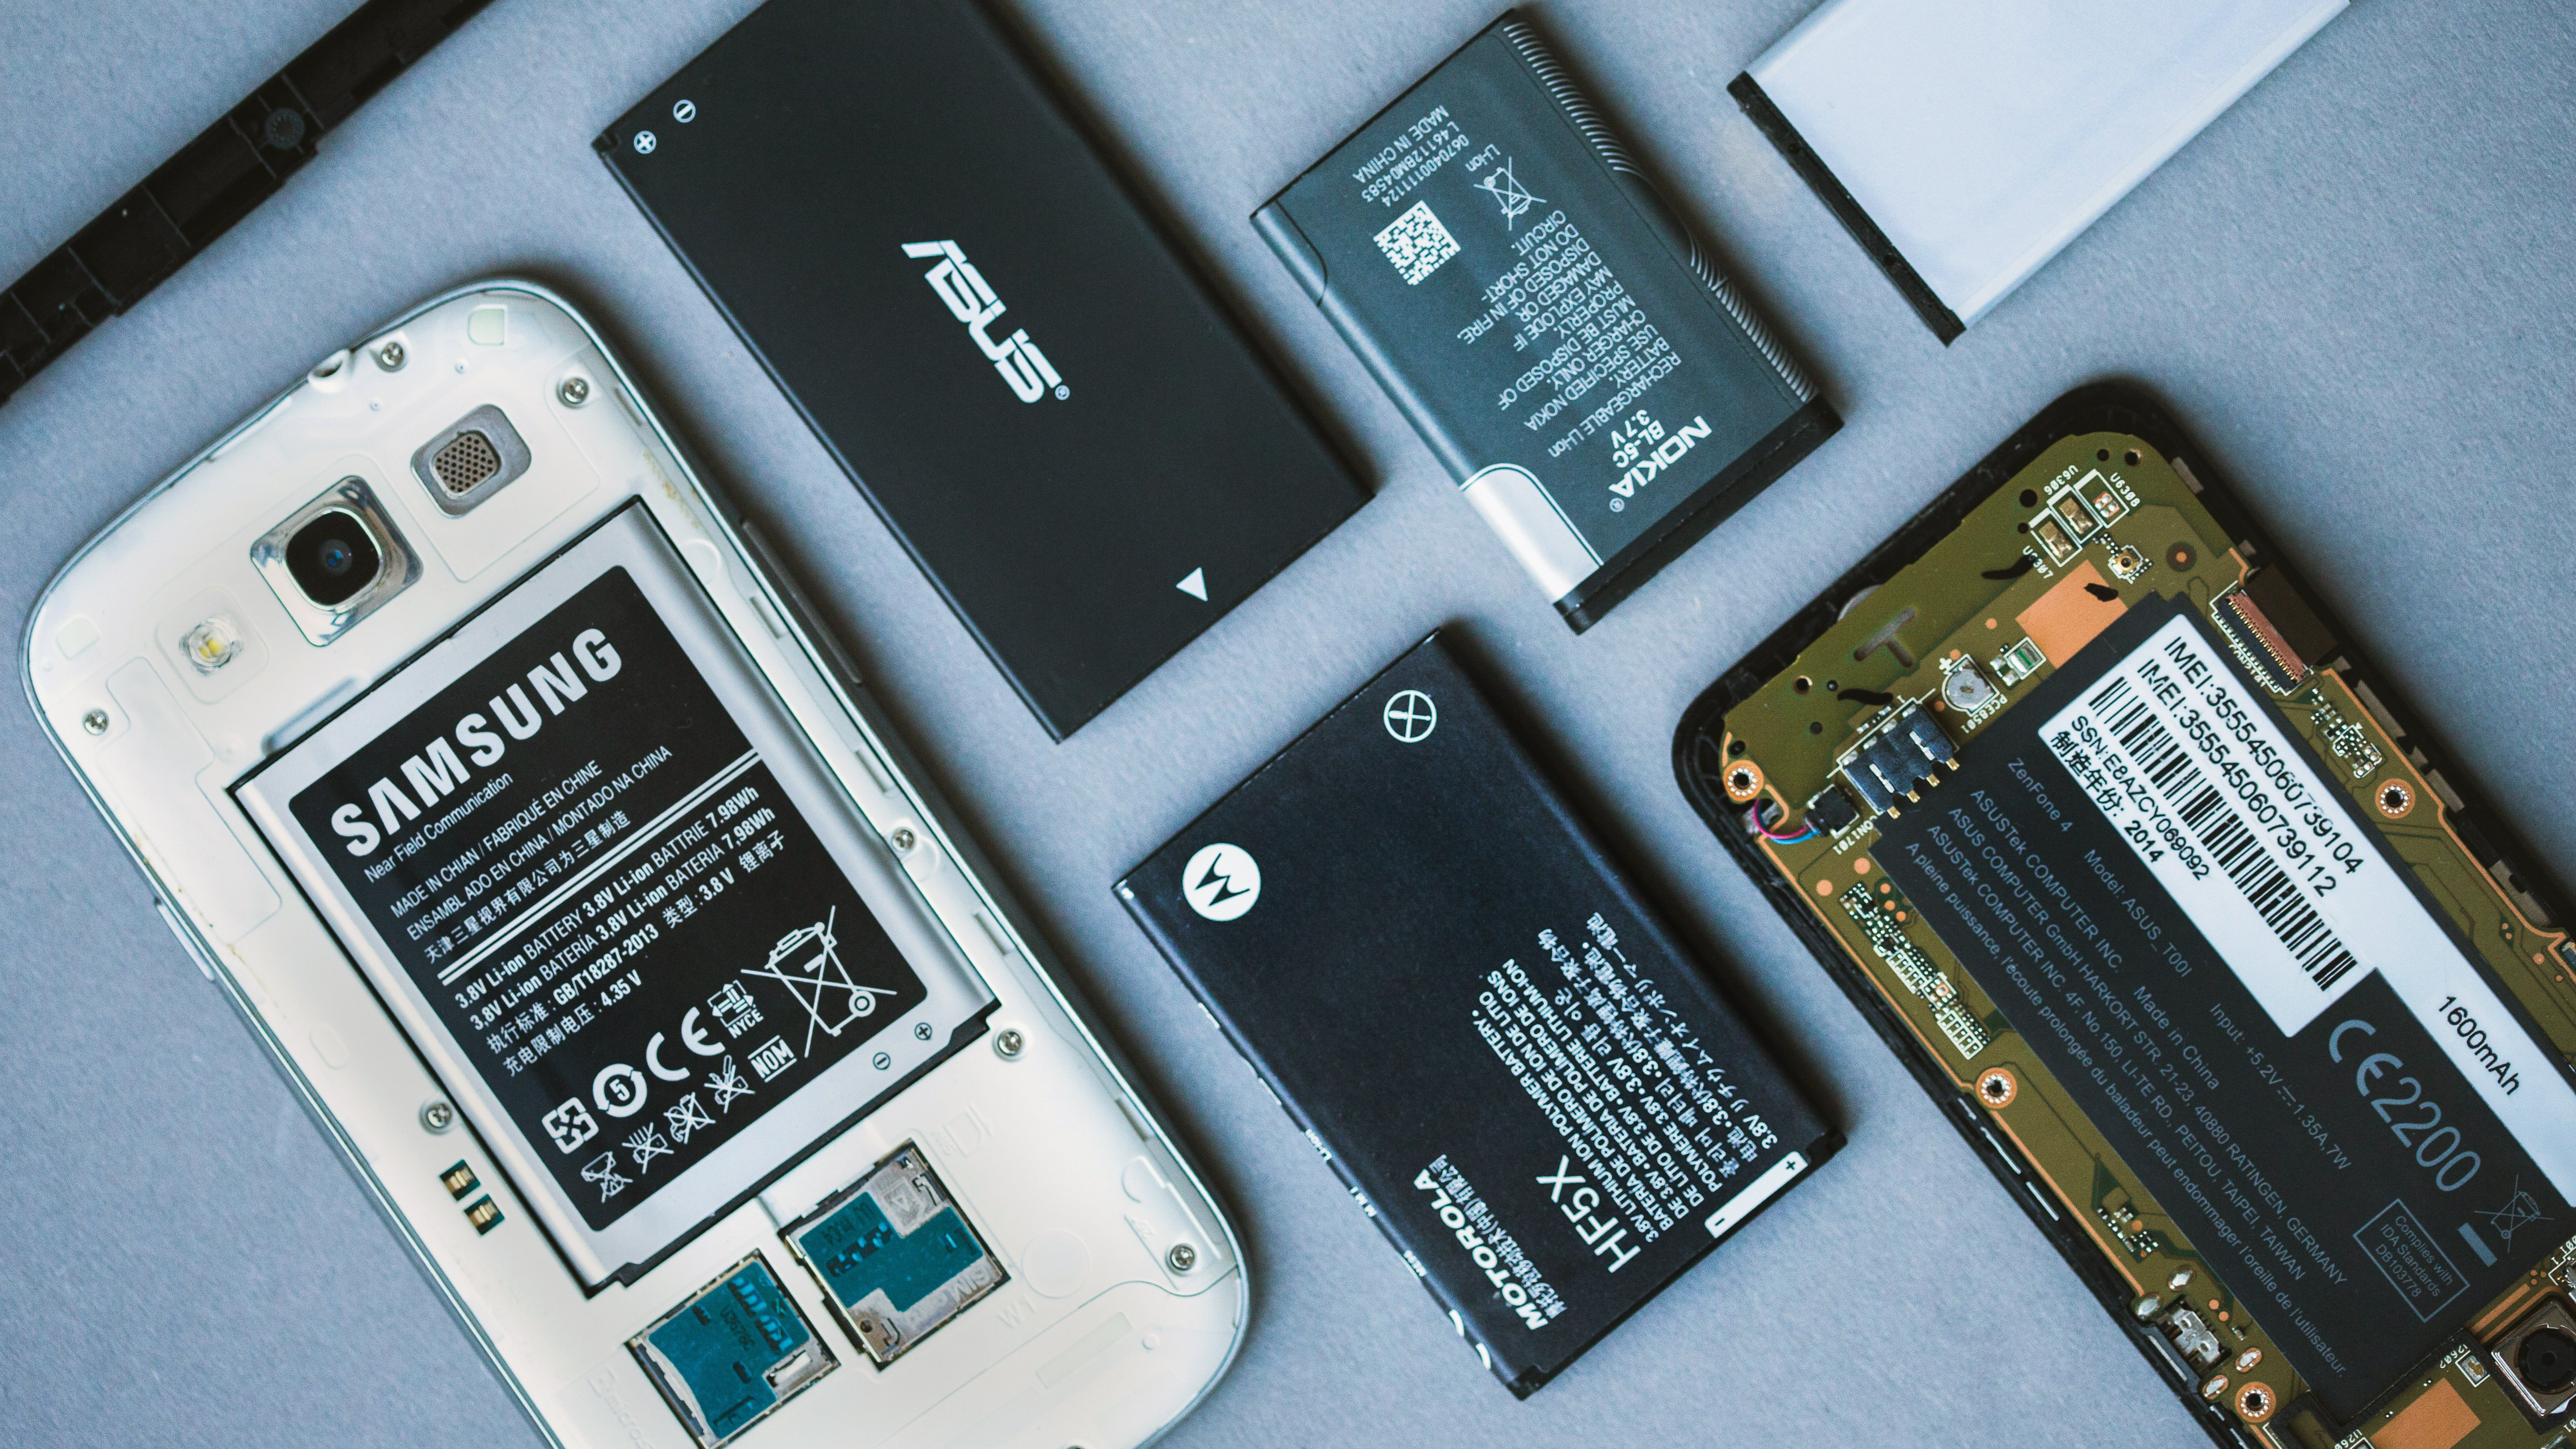 problemes solutions smartphone qui chauffe